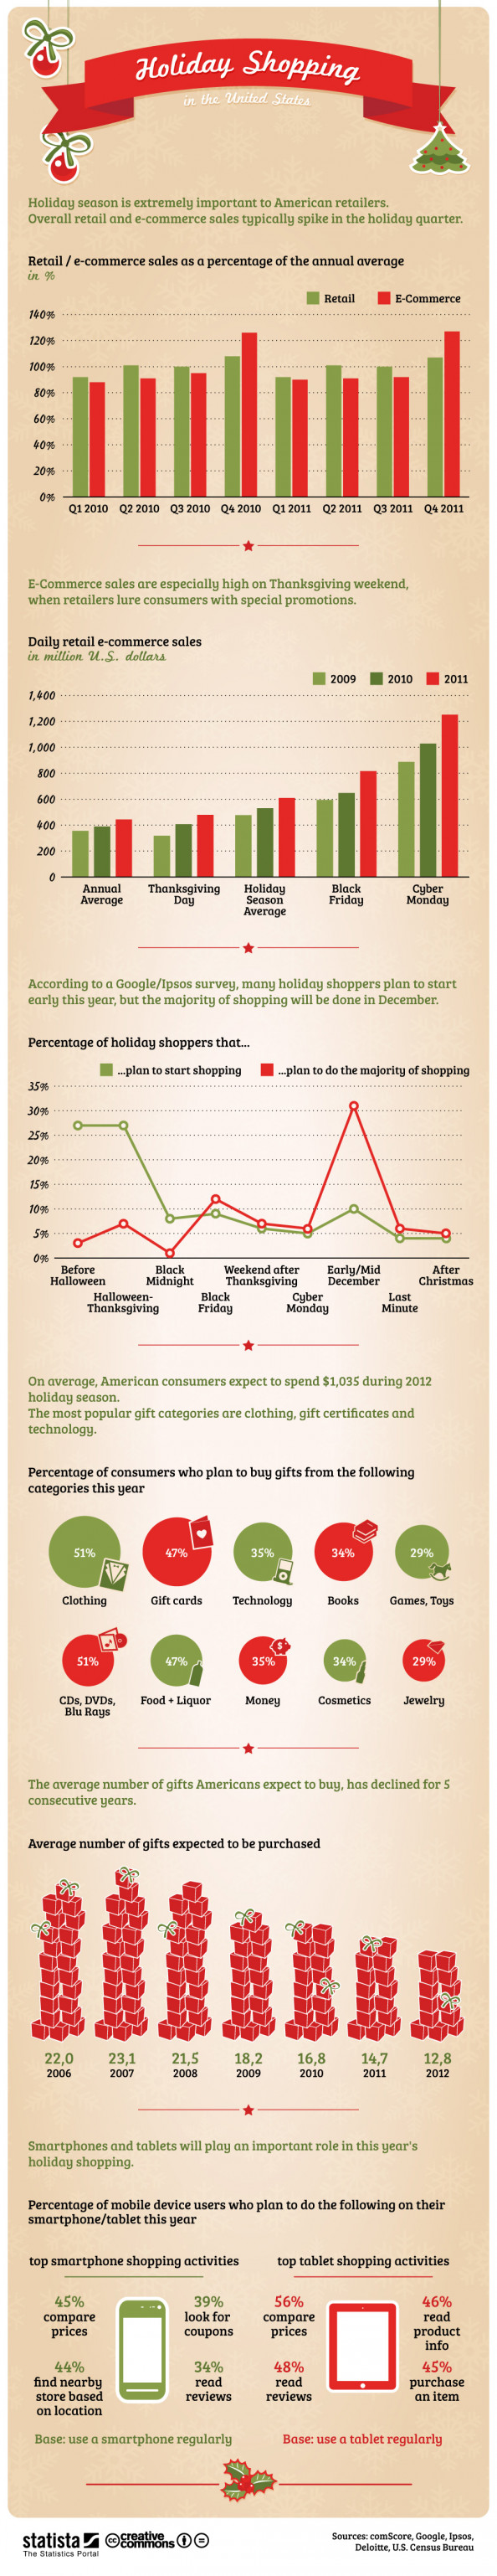 Holiday Shopping in the United States Infographic